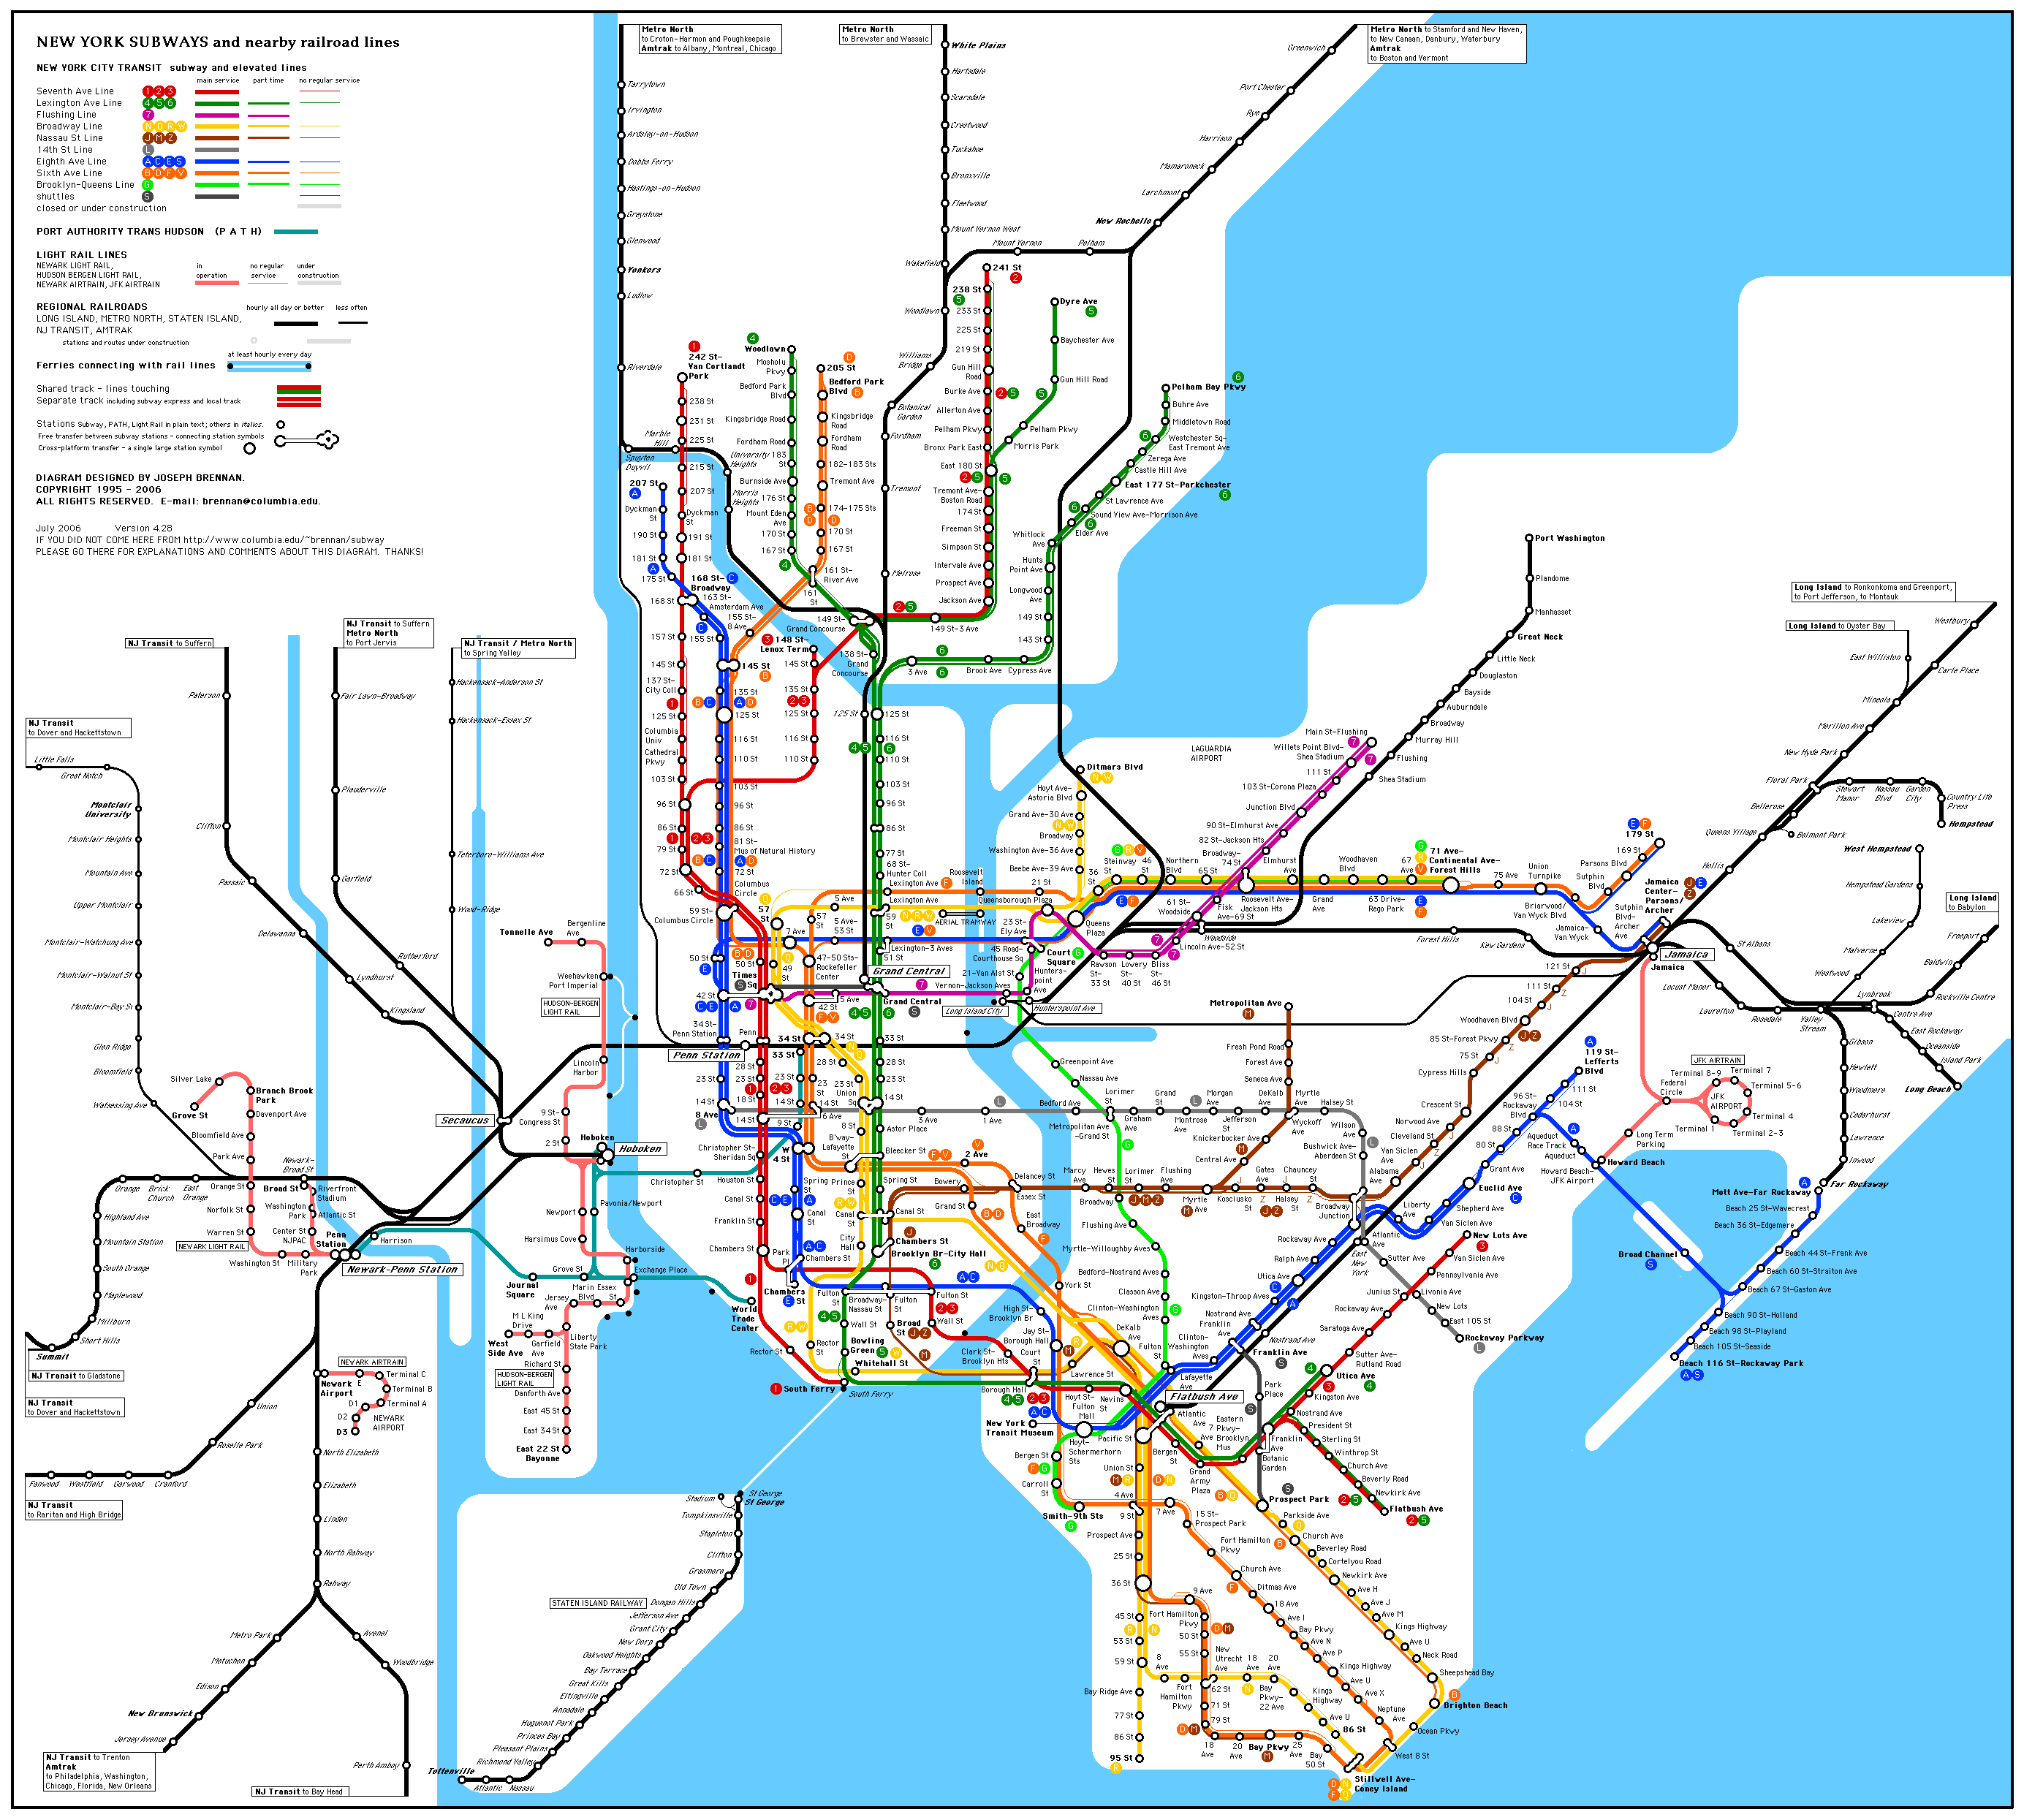 Large Ny Subway Map.Large Detailed Subway Map Of New York City The Usa New York City